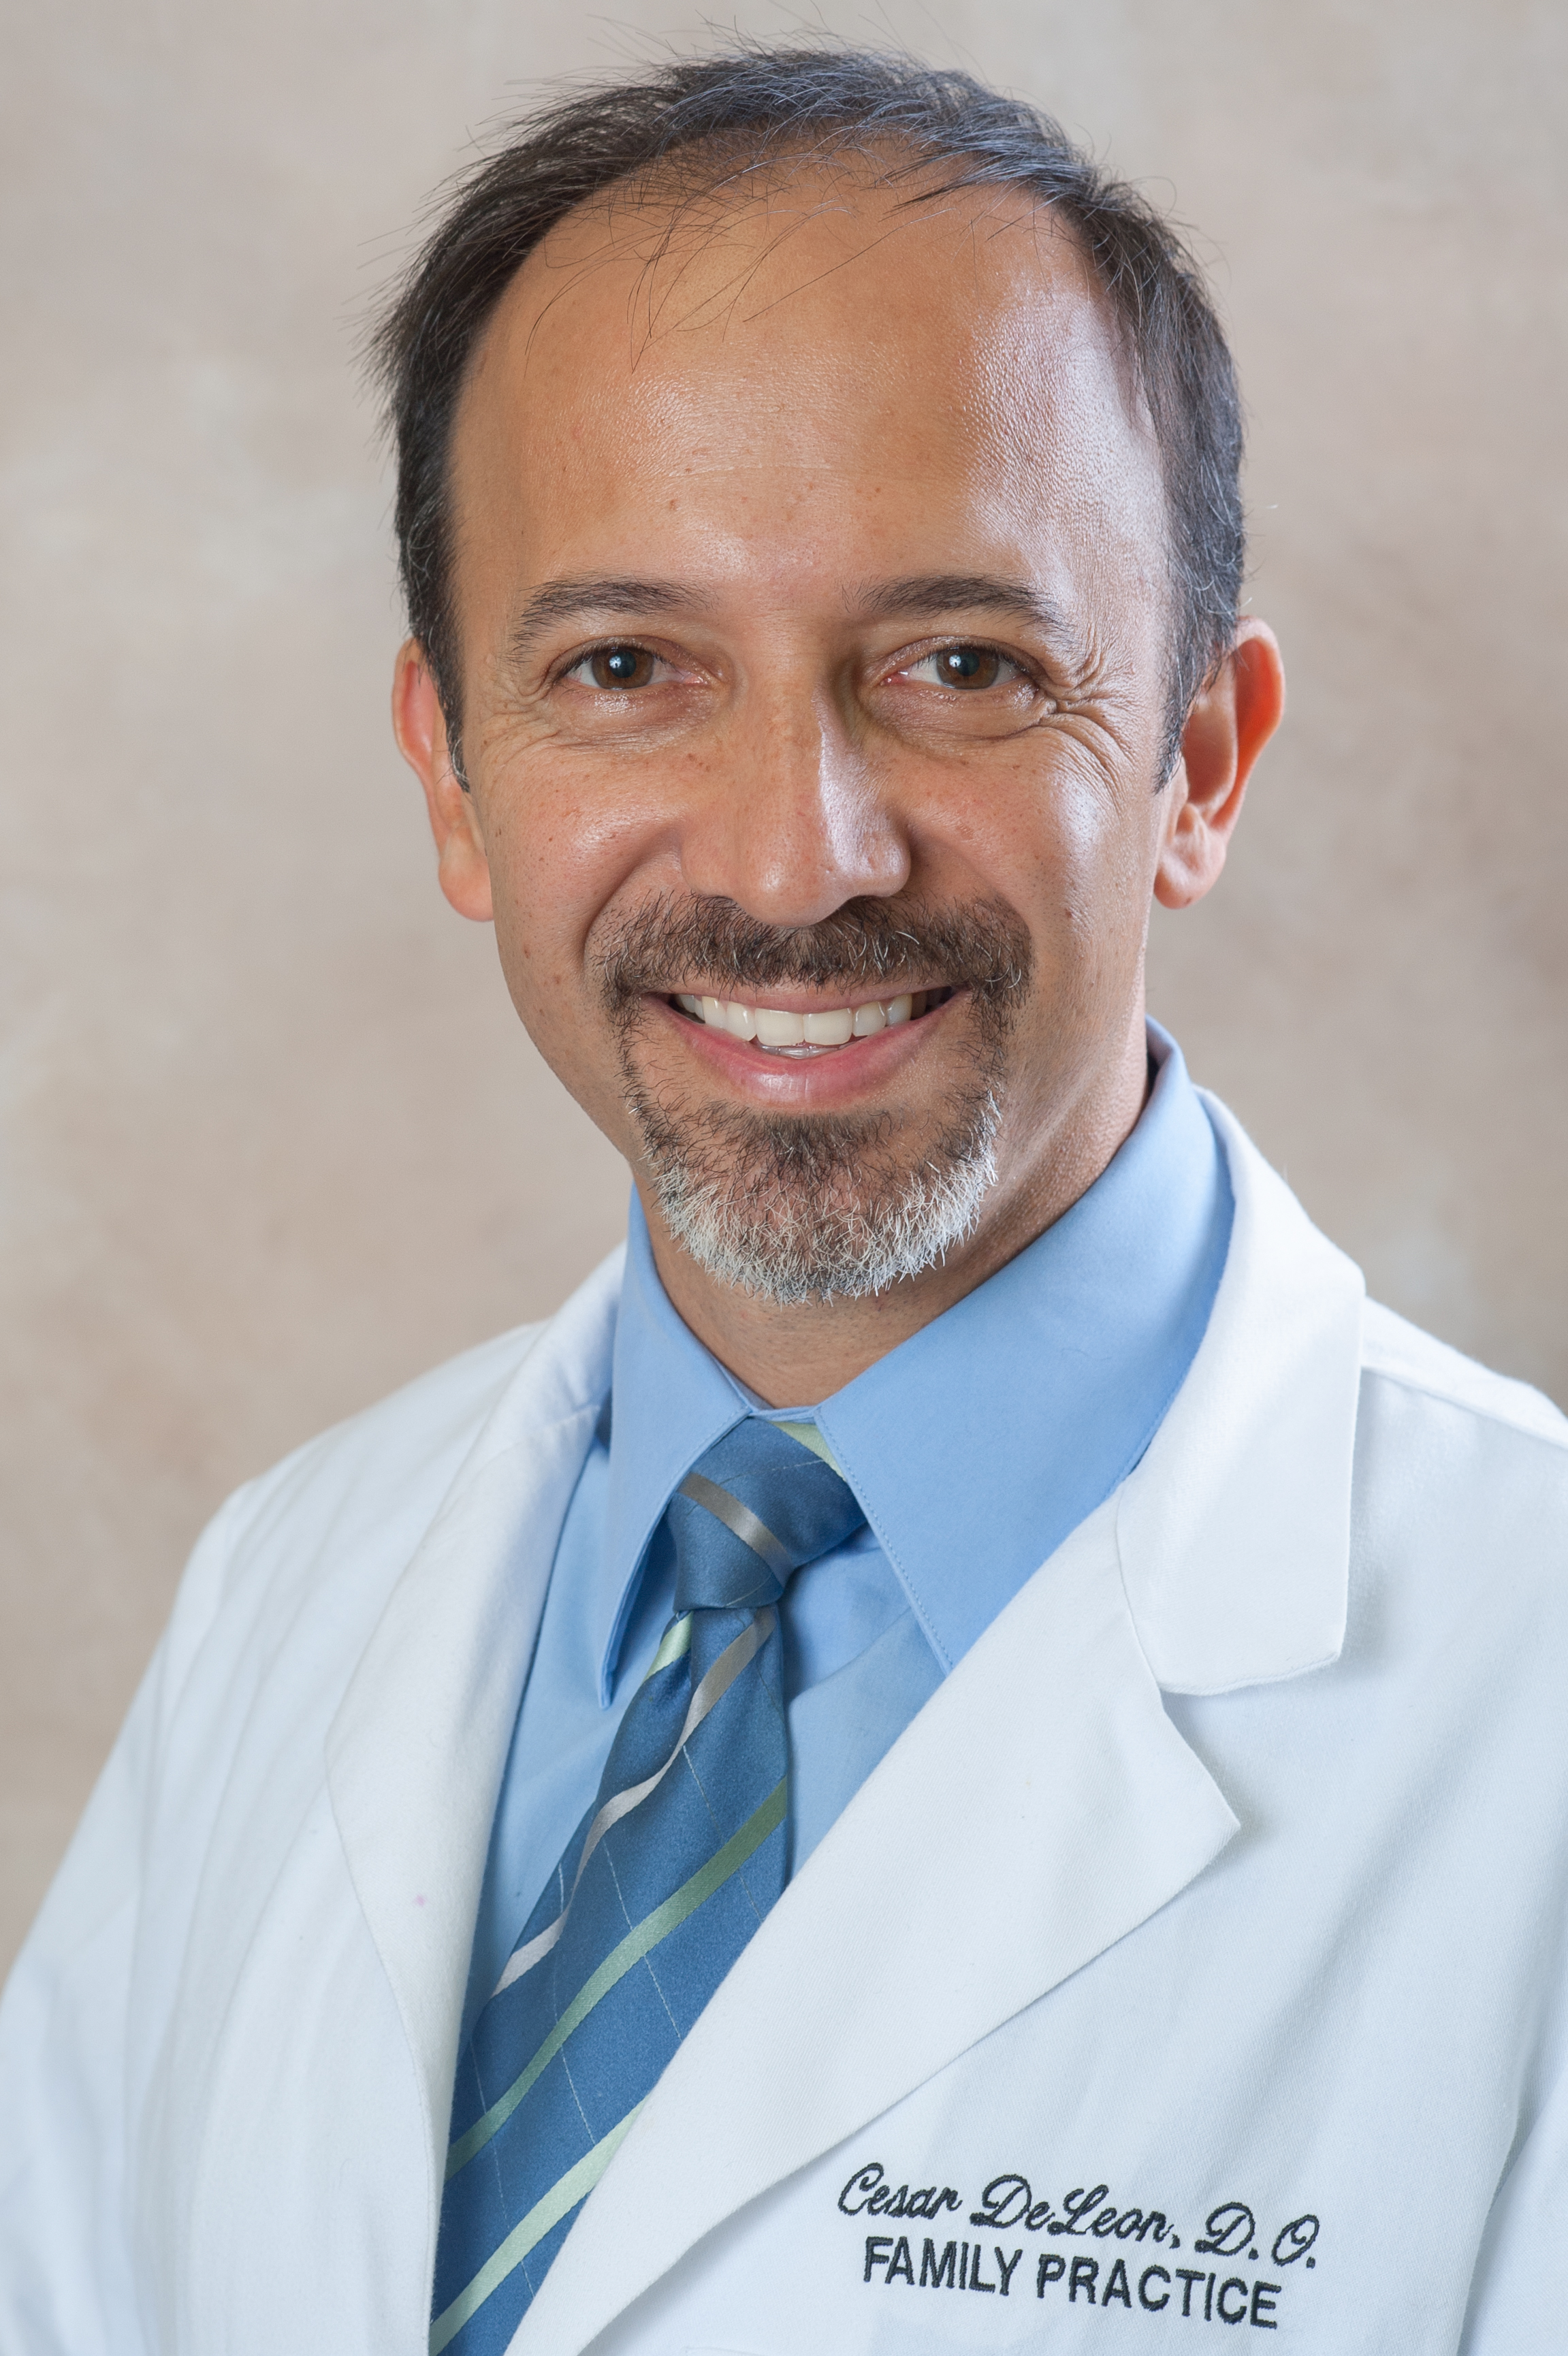 Cesar DeLeon, D O  - Millennium Physician Group